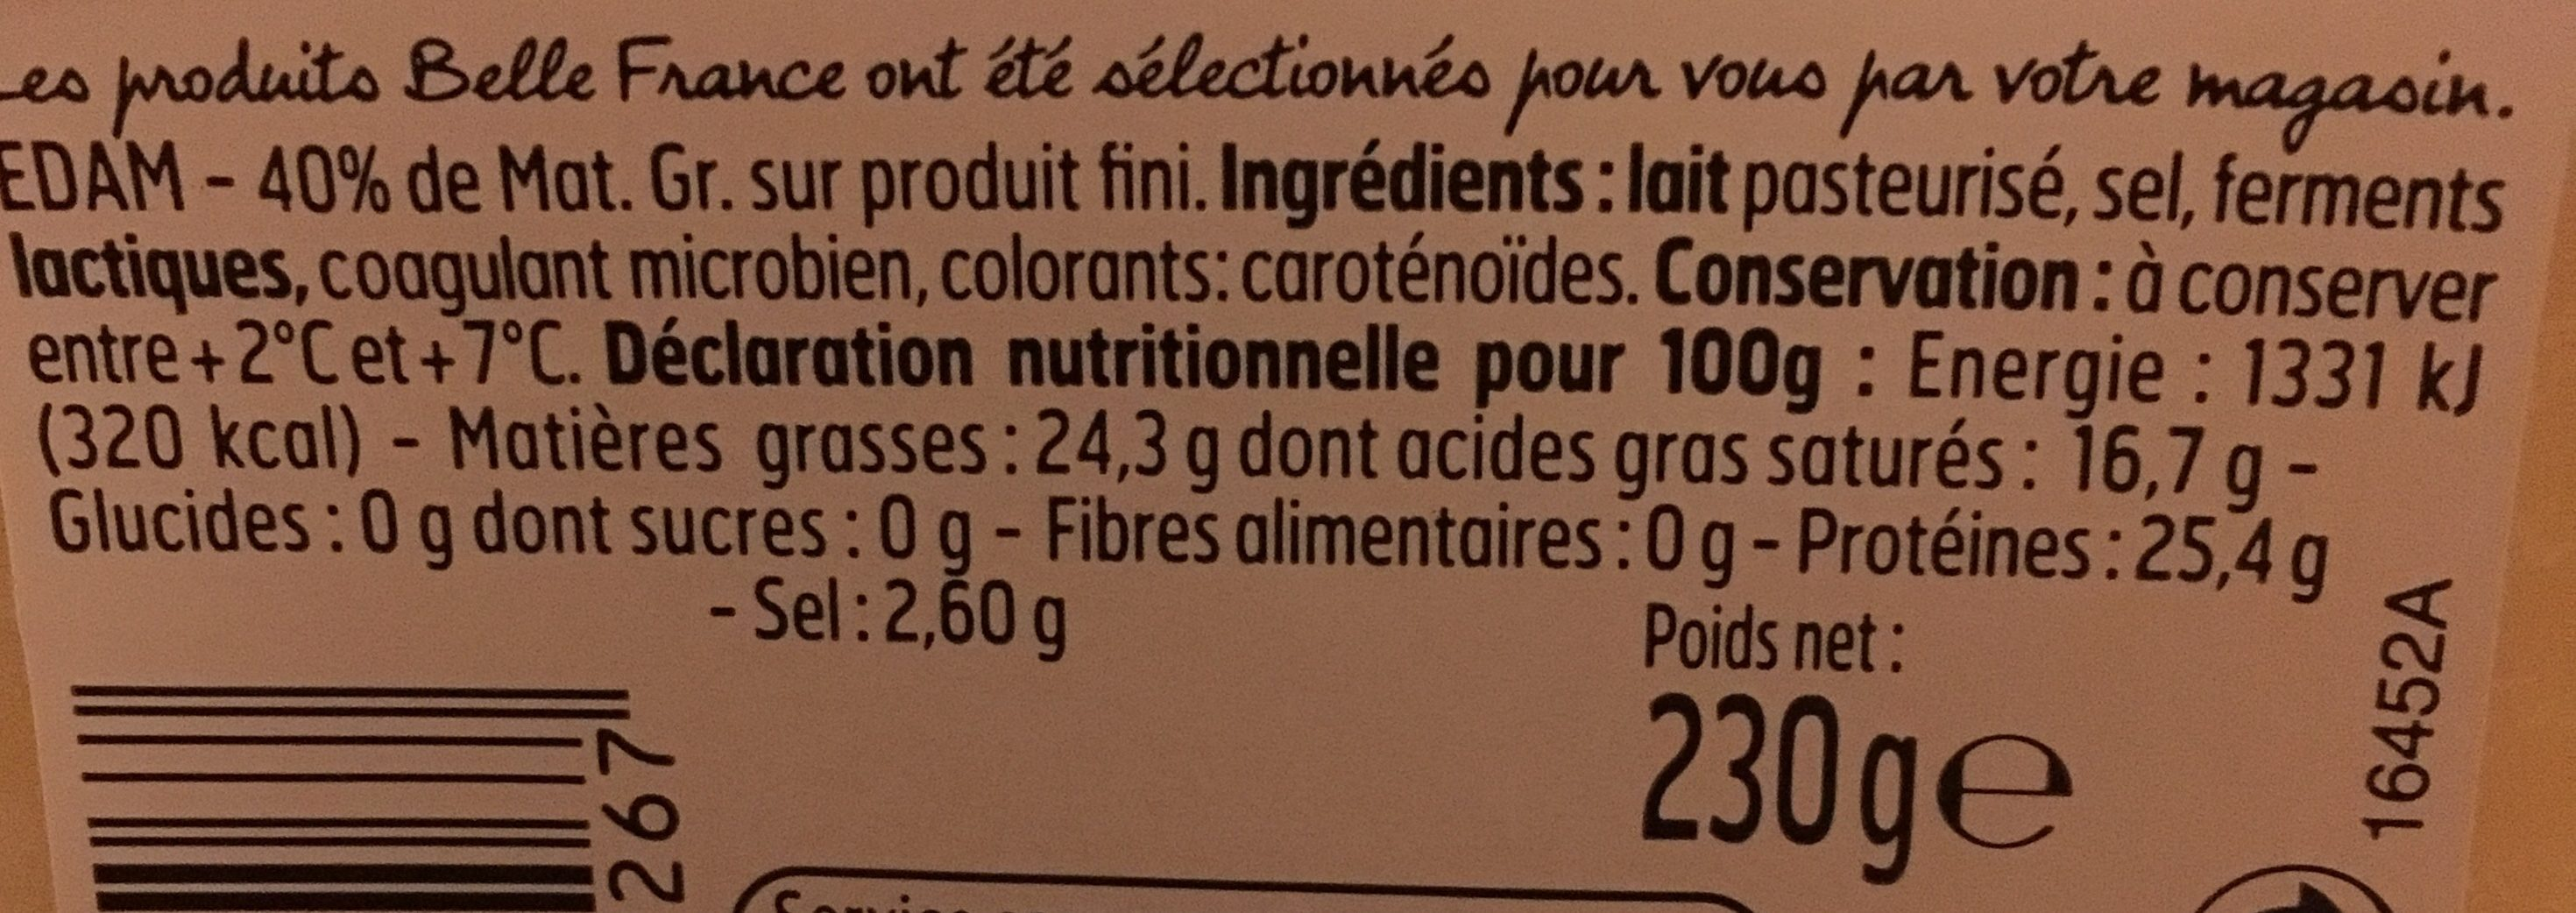 Edam - Ingredients